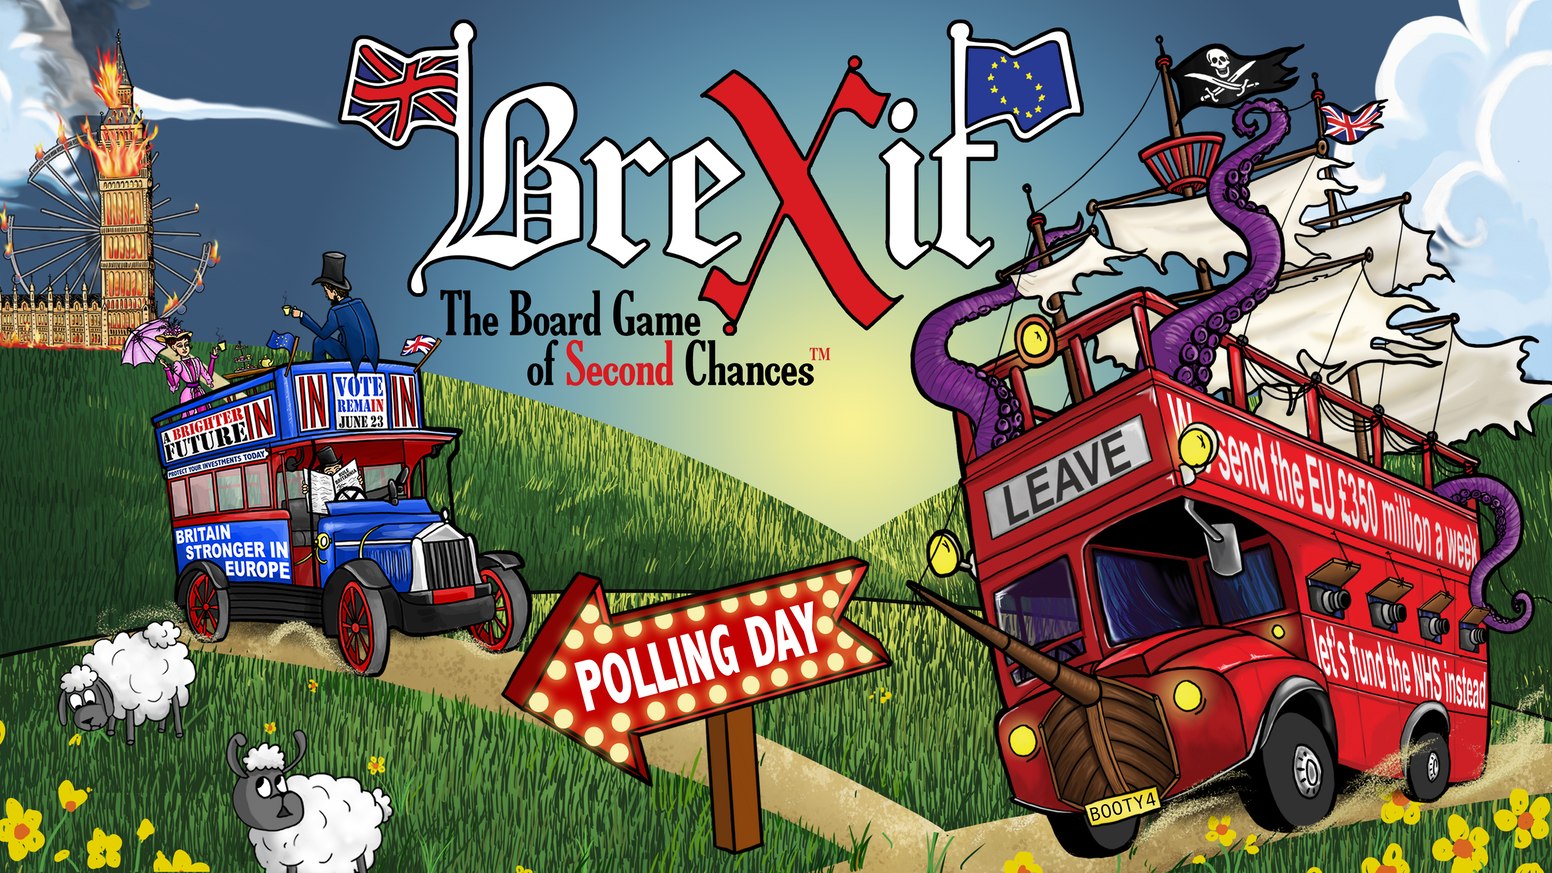 Brexit The Board Game Of Second Chances By Bad Hipster Games